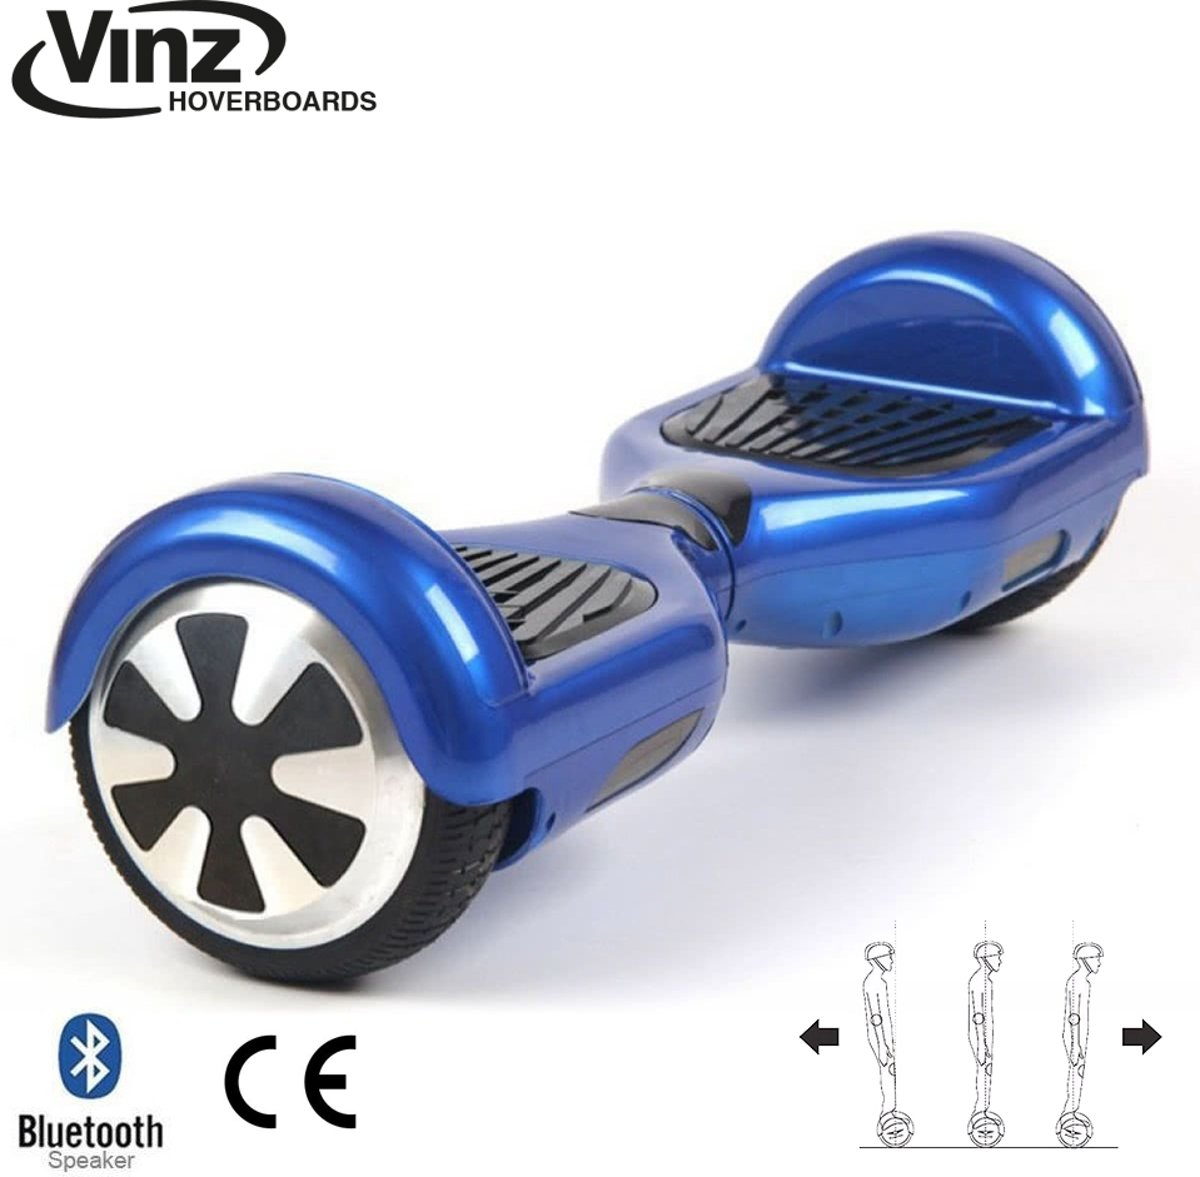 Vinz Hoverboard incl. Bluetooth Boxen & LED 6,5 Inch - Blauw